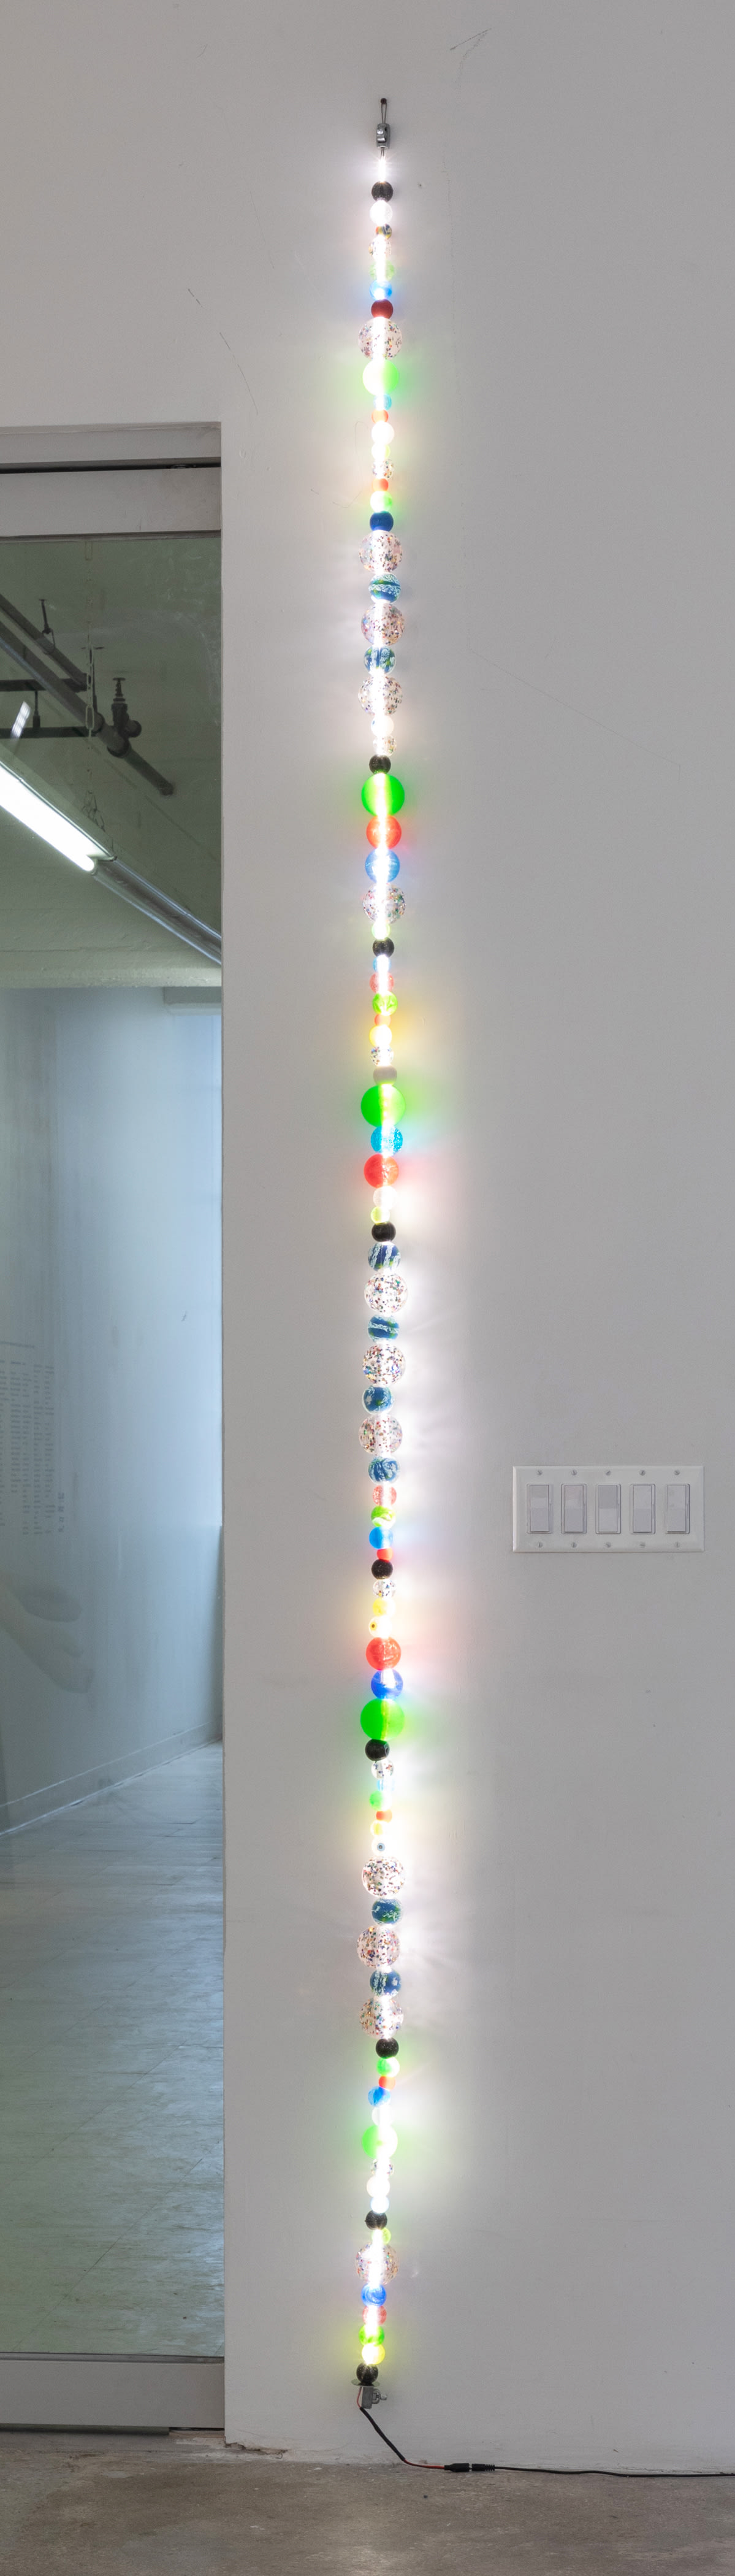 Jessie Stead Beaded Interludes vol. 30, 2019 Assorted synthetic rubber balls, LED lights, electronic wiring 120 x 2 1/2 in 304.8 x 6.3 cm